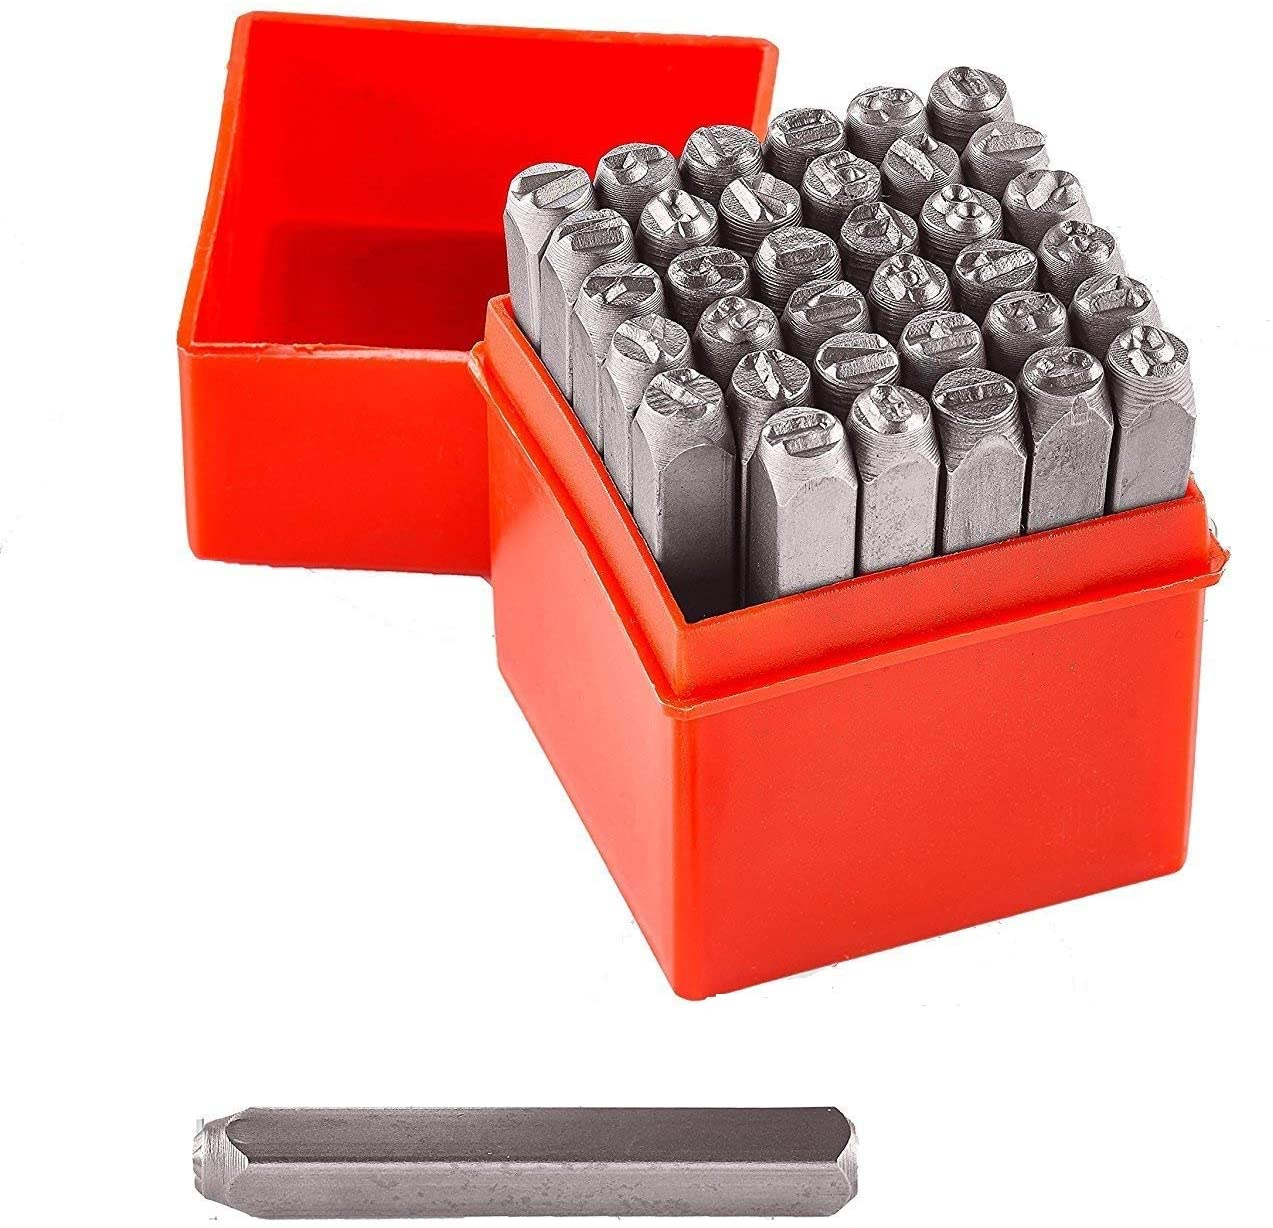 Professional 36 pcs Number /& Letters Stamp Punch Set 1//4